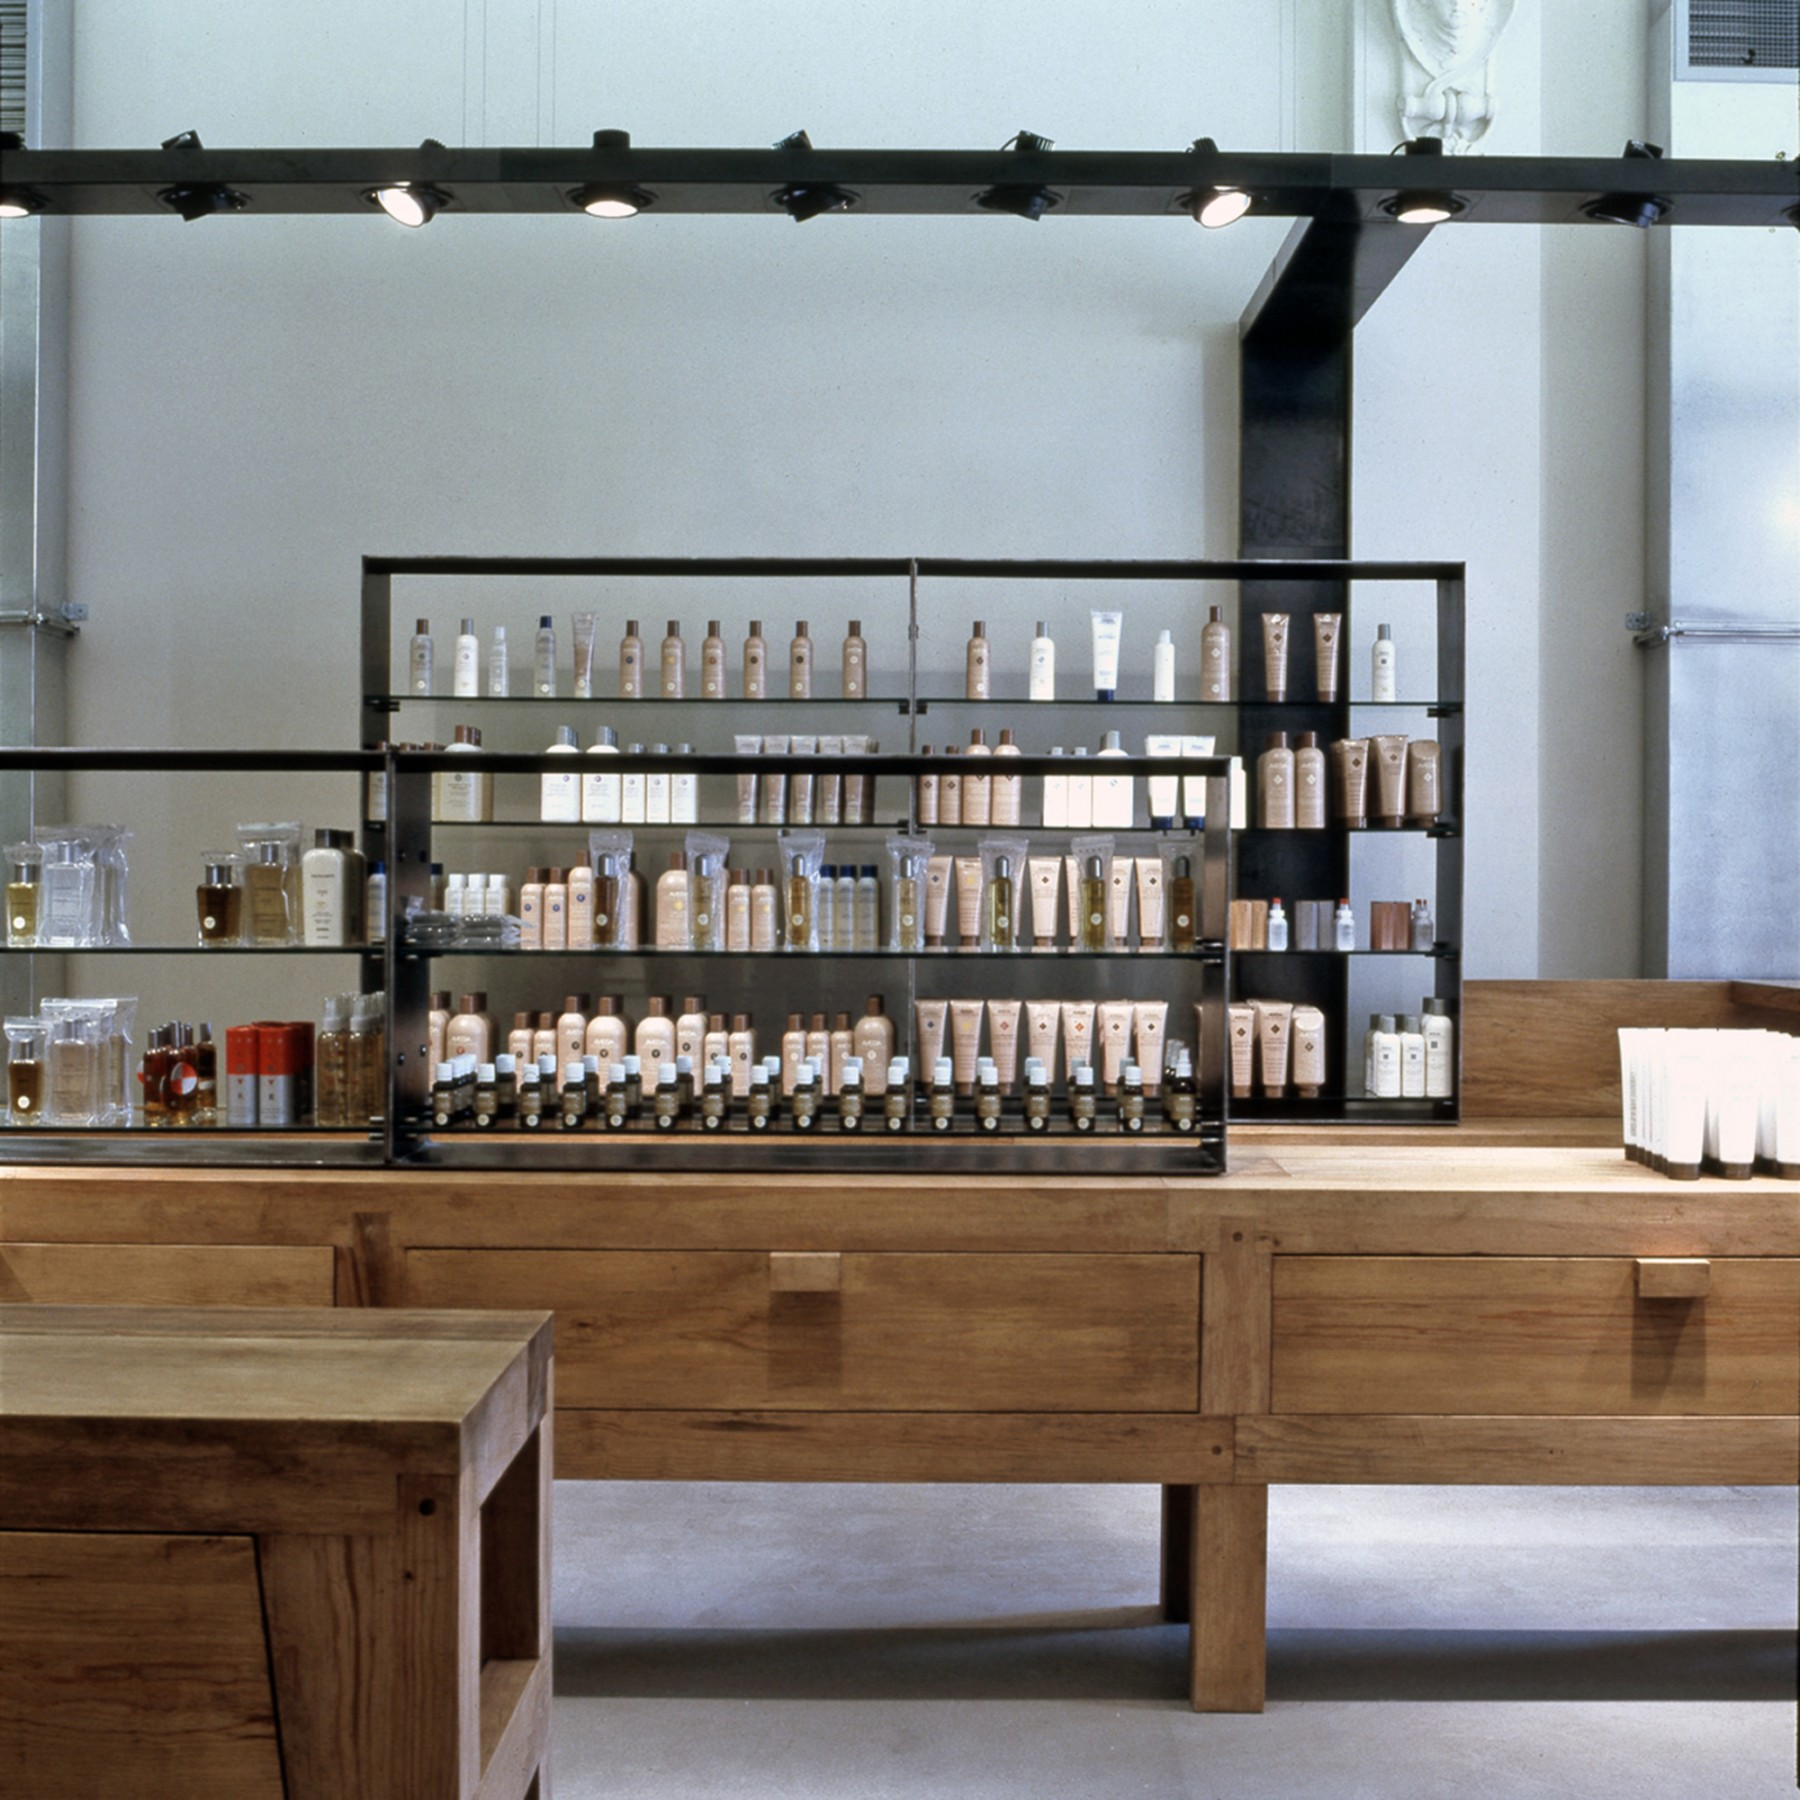 Aveda-London-New-York-Berlin-craft-organic-cosmetic-company-design-concept-Jamie-Fobert-Architects-5